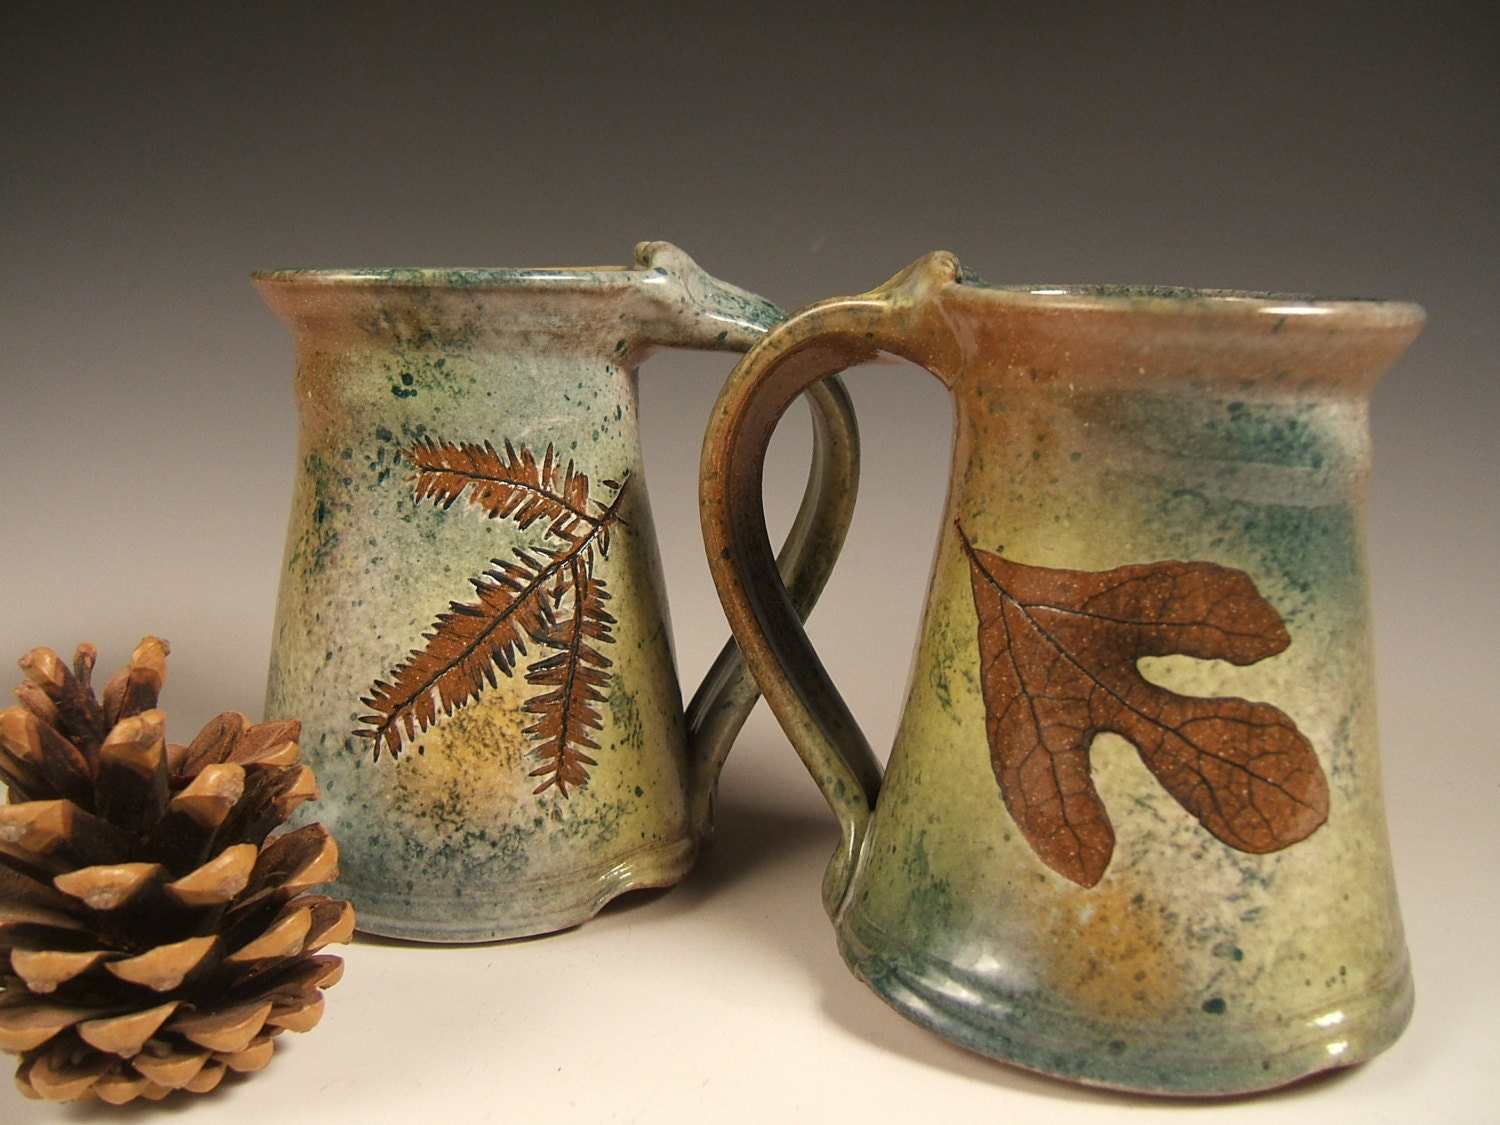 Green Leaf Stoneware Coffee Mugs Tea Mugs 10 To 12 Ounce